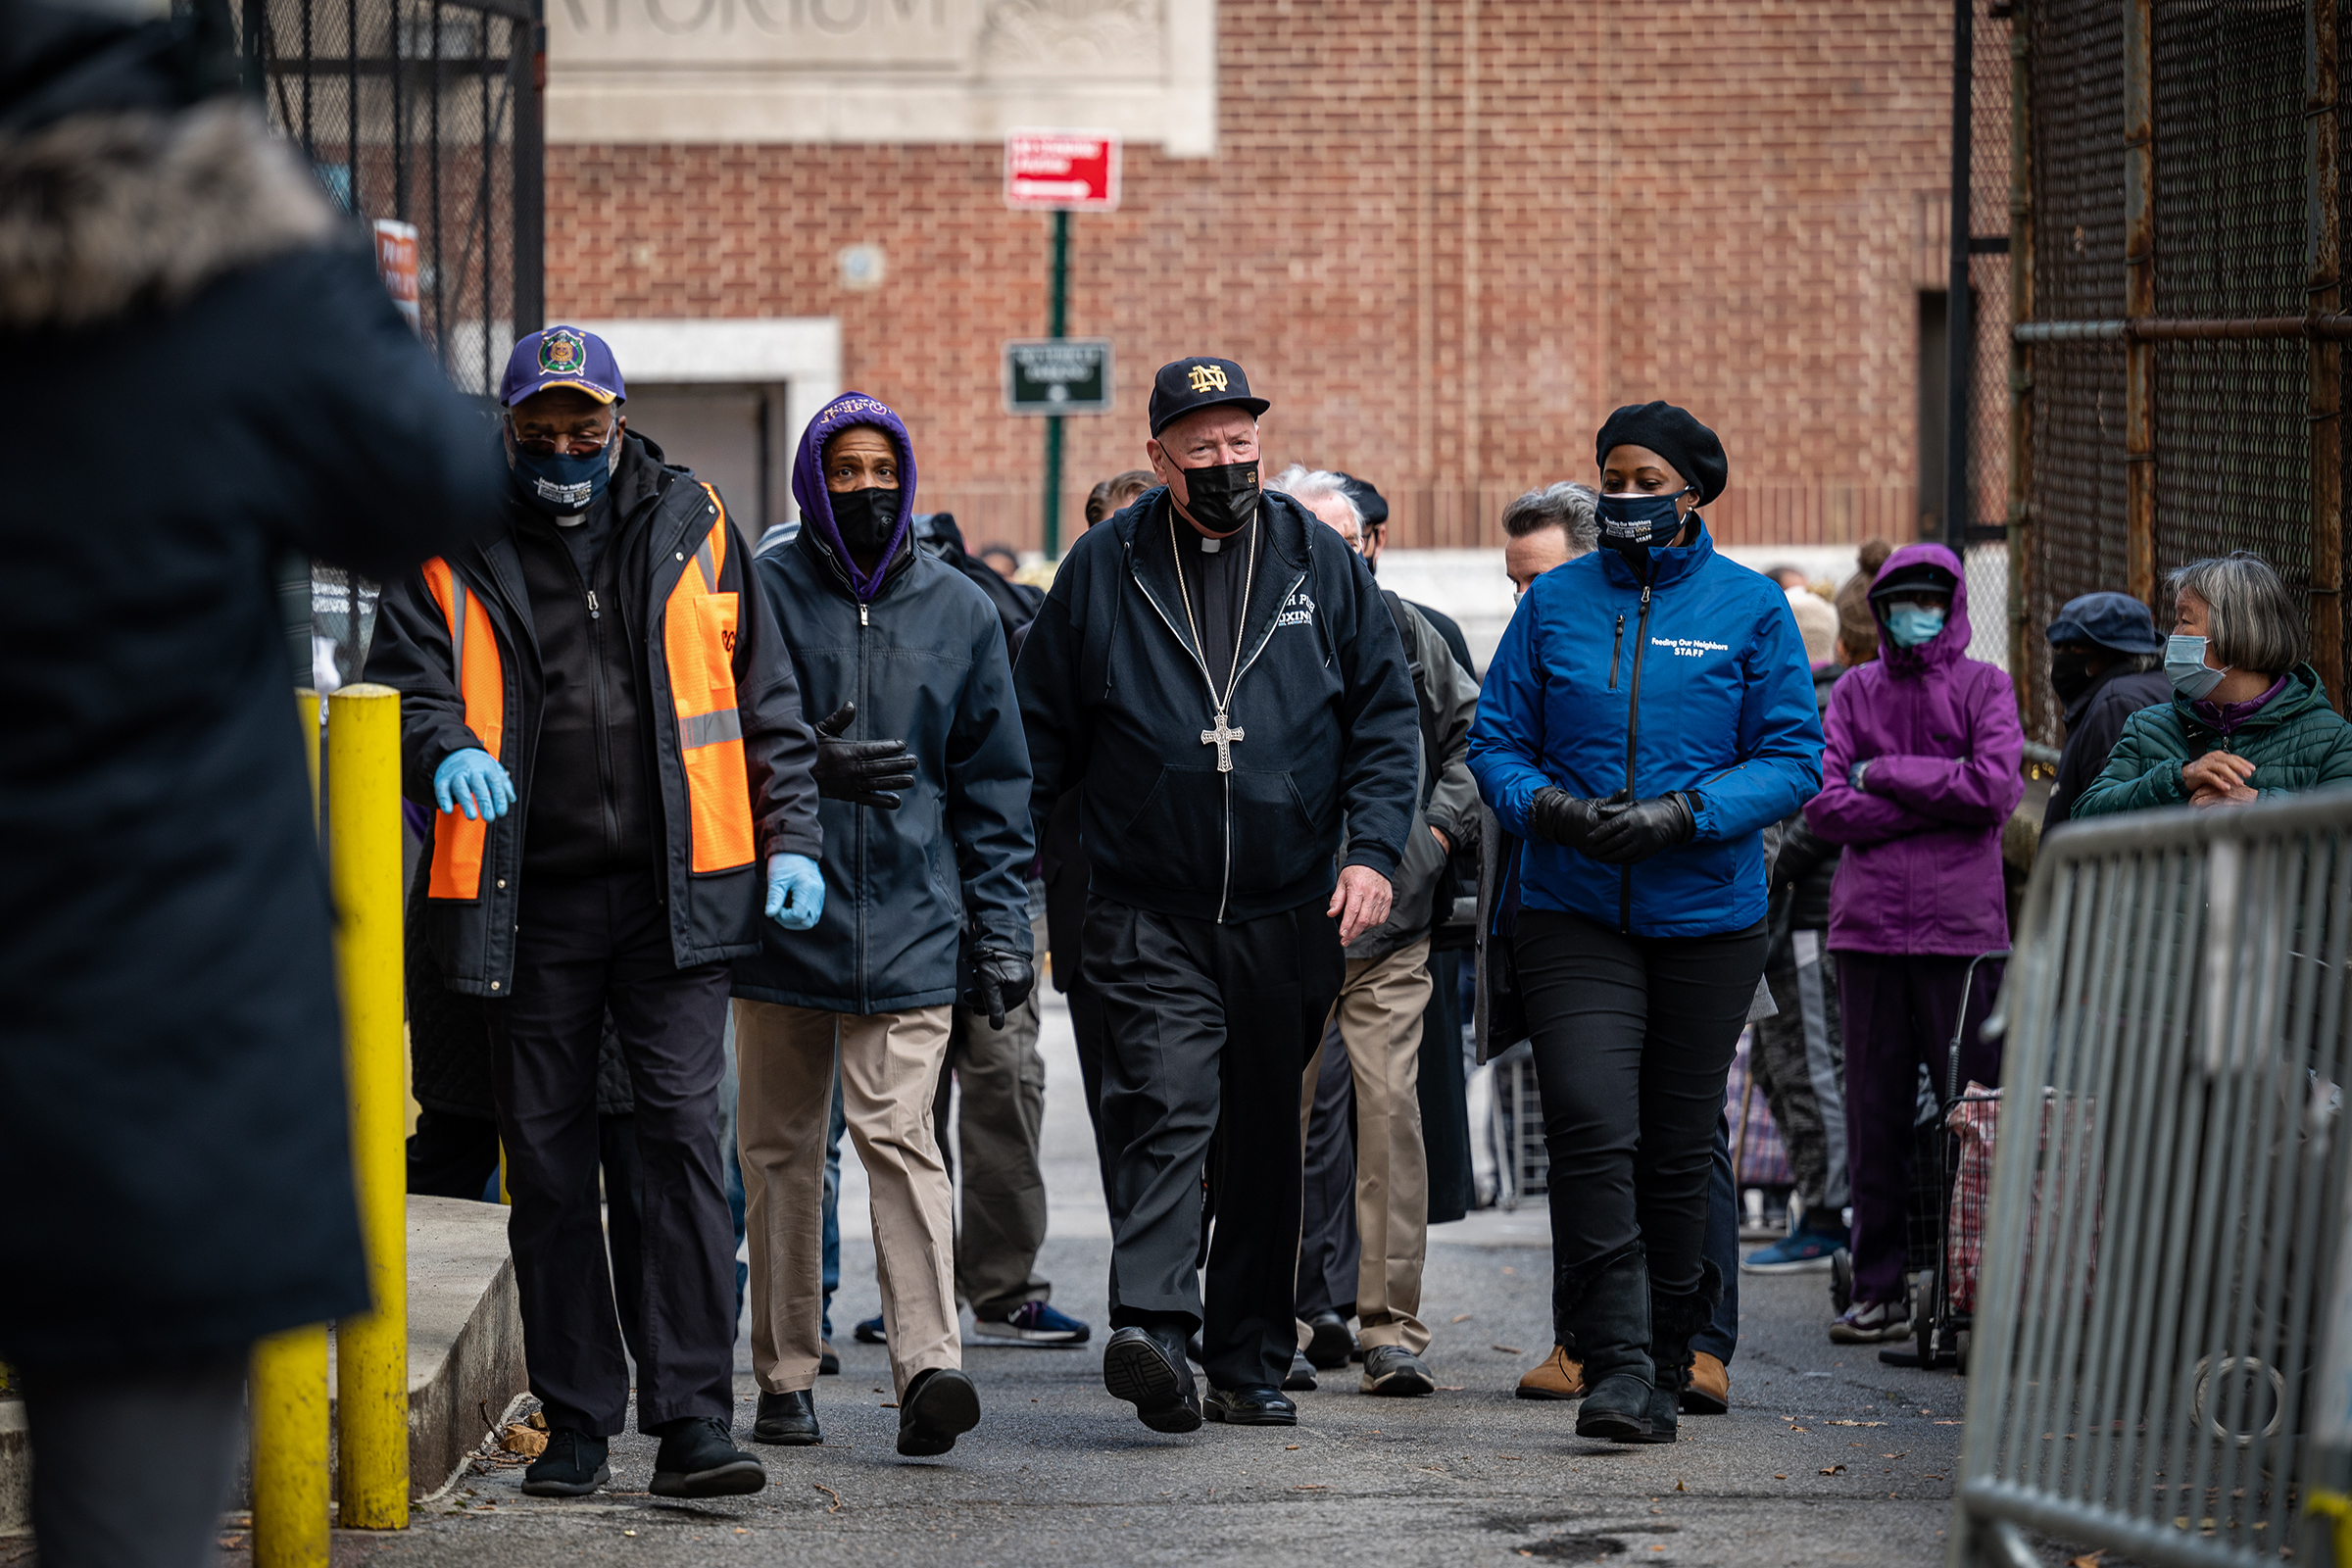 Timothy Cardinal Dolan, Archbishop of New York arrives at the Lt. Joseph P. Kennedy Community Center in Harlem on November 24, 2020 to assist with the distribution of food for Thanksgiving to those in need. [Johnny Zhang]